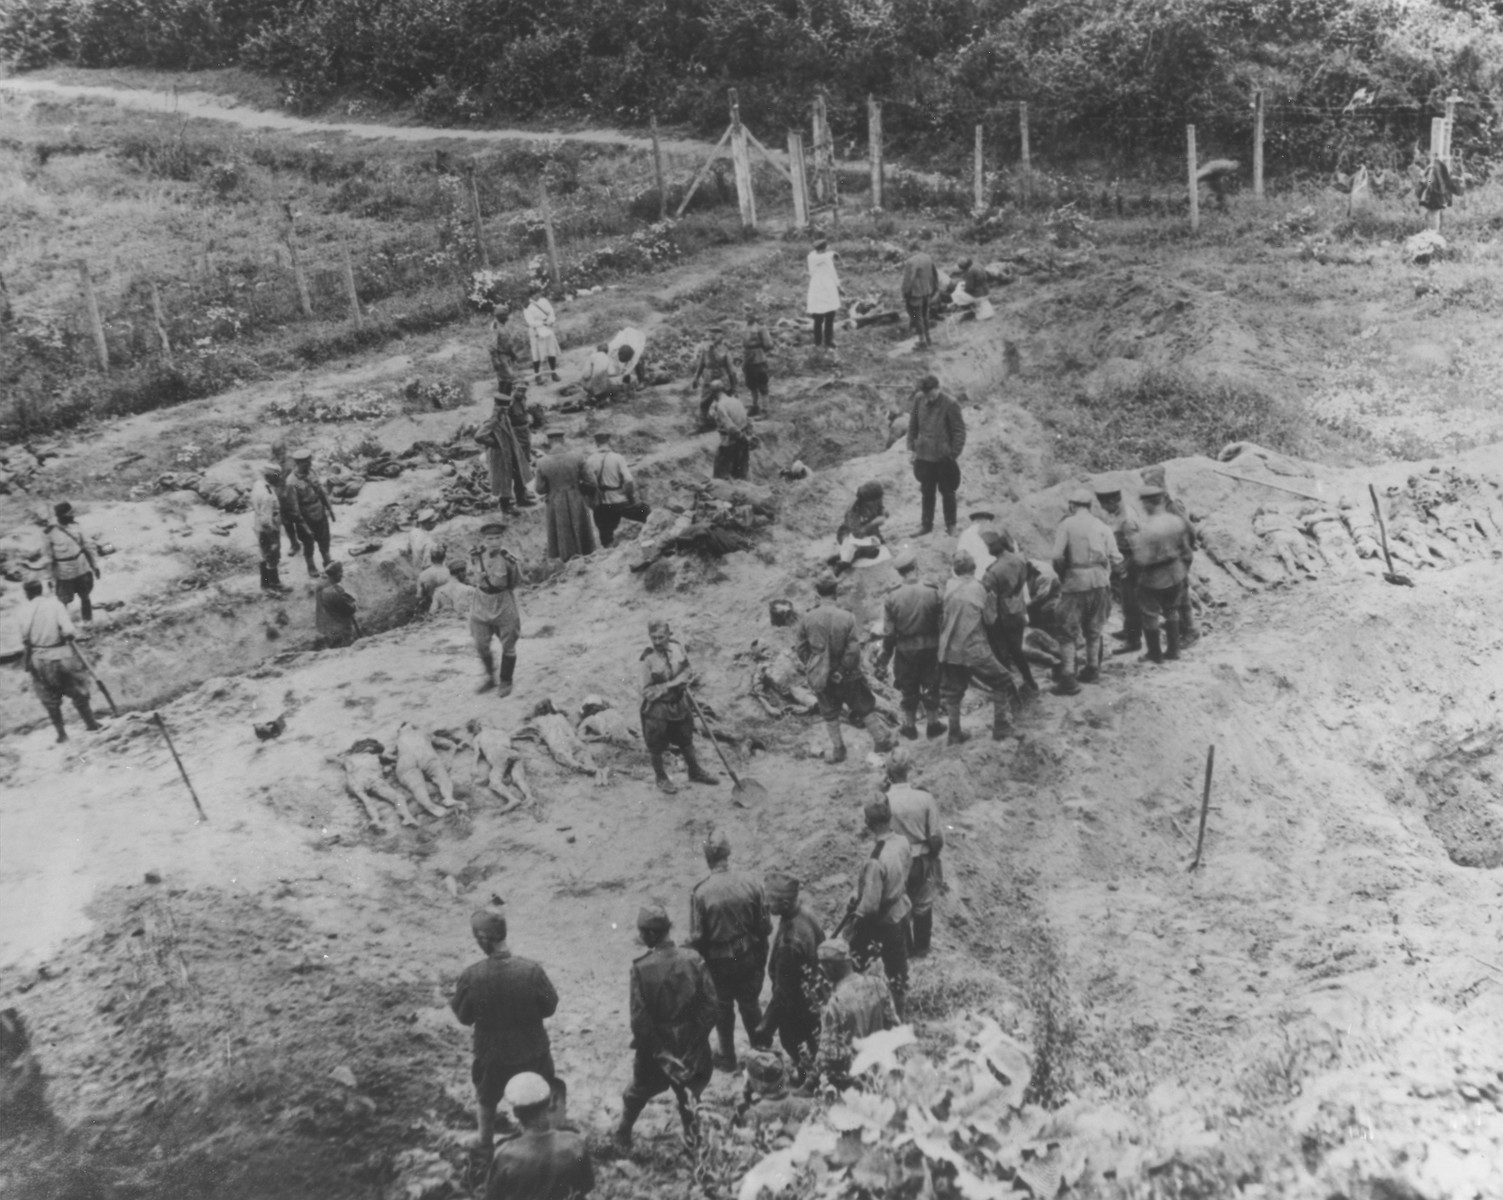 Soviet soldiers exhume a mass grave in Lvov.  Upon examination of the victims, it was determined that the mass shooting took place on July 18, 1944.  The investigating commission found identification cards for Rybey Vassiley, Ponashuk Vassiley, Okun Michail, Soroka Igor, Rybakovski Rudolf, Cyganik Bortlomey, Gavrilov Michail, and Sinneruchyj Alexander among others.